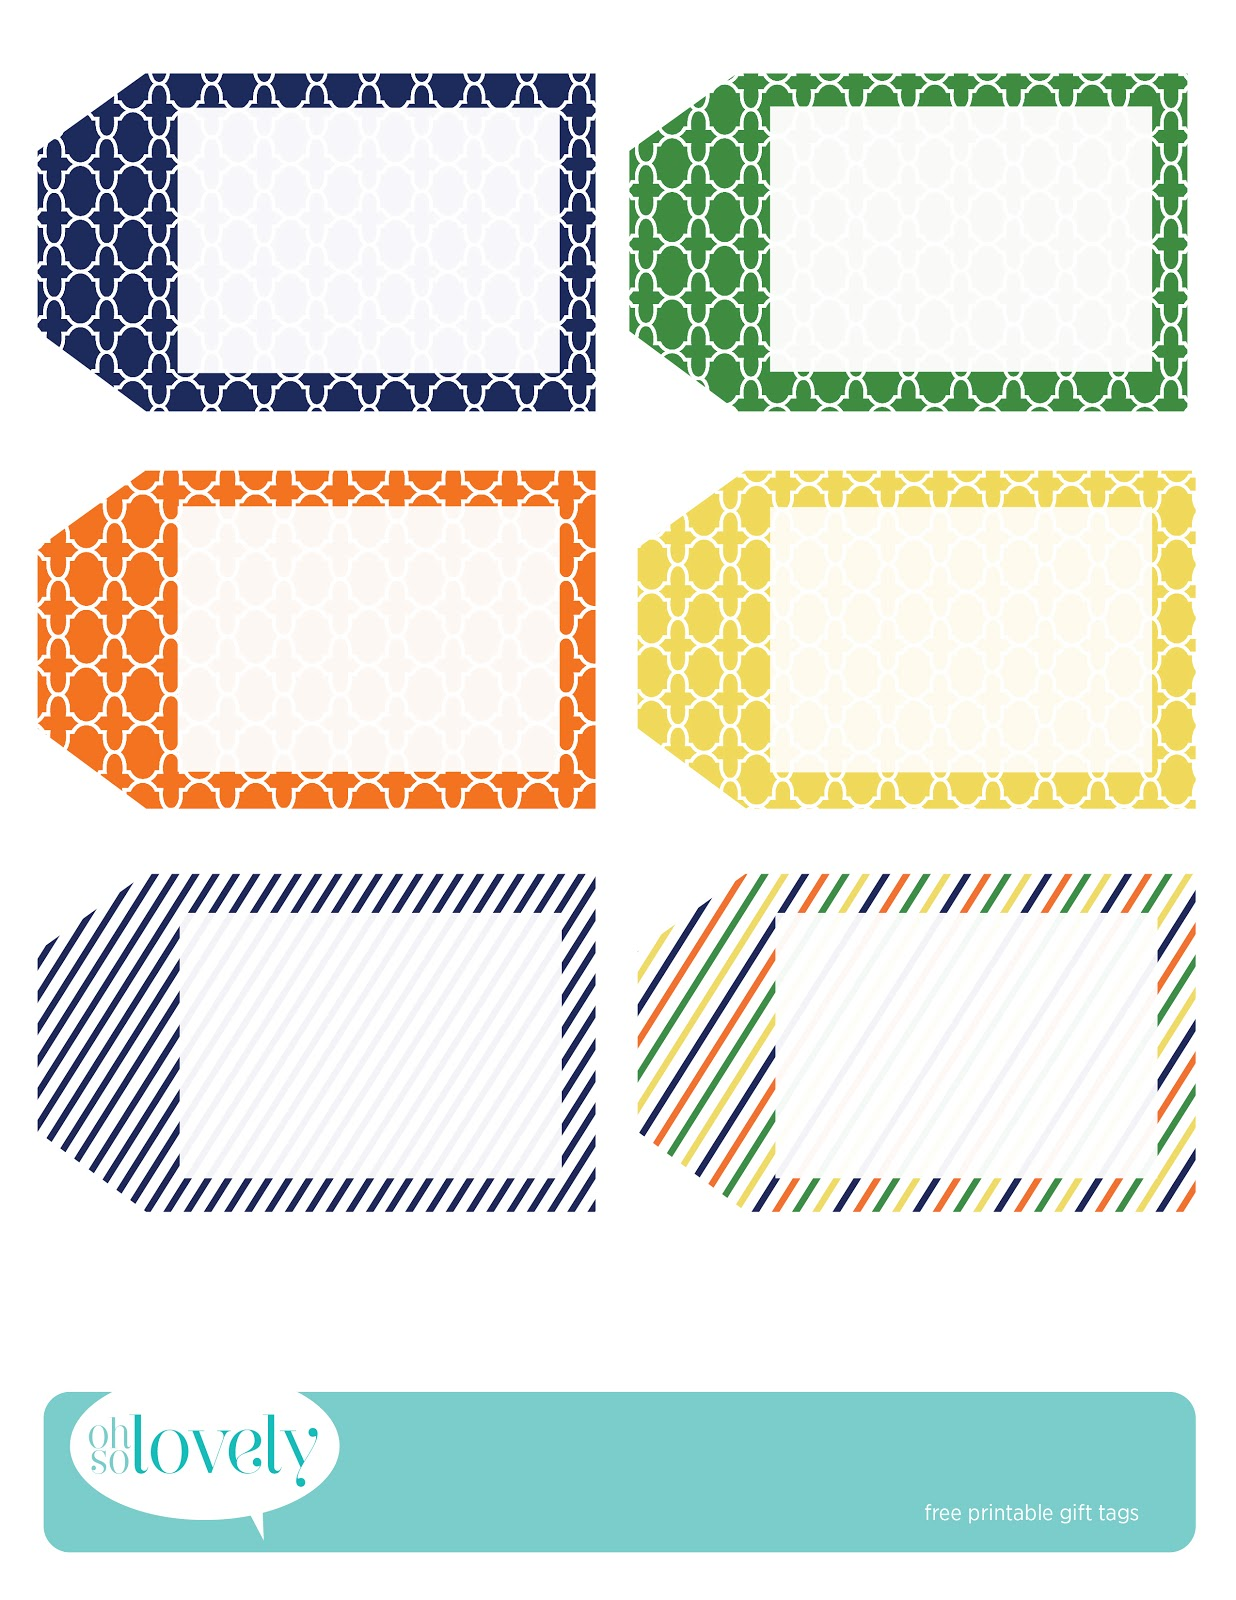 birthday gift labels printable ; oh-so-lovely-free-gift-tags2-01